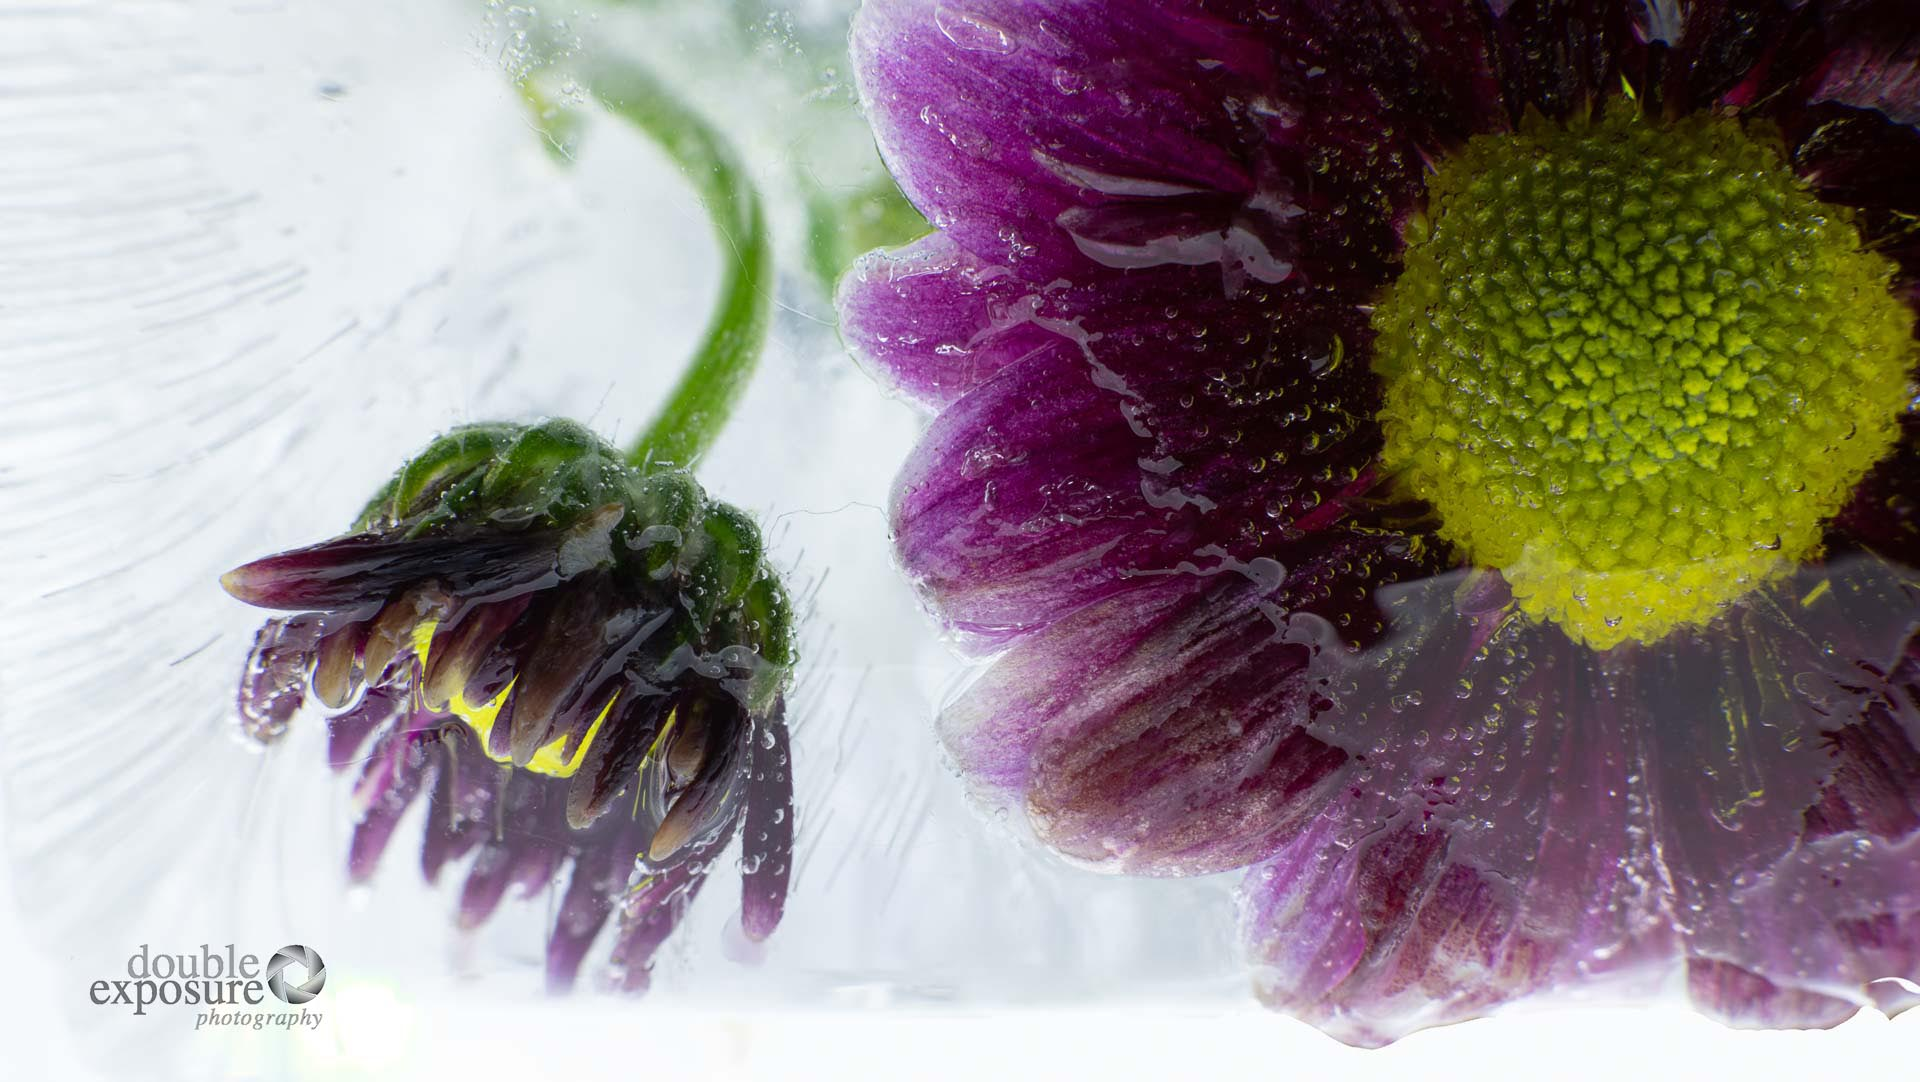 preserved on ice, two colourful flowers look out from their icy prison